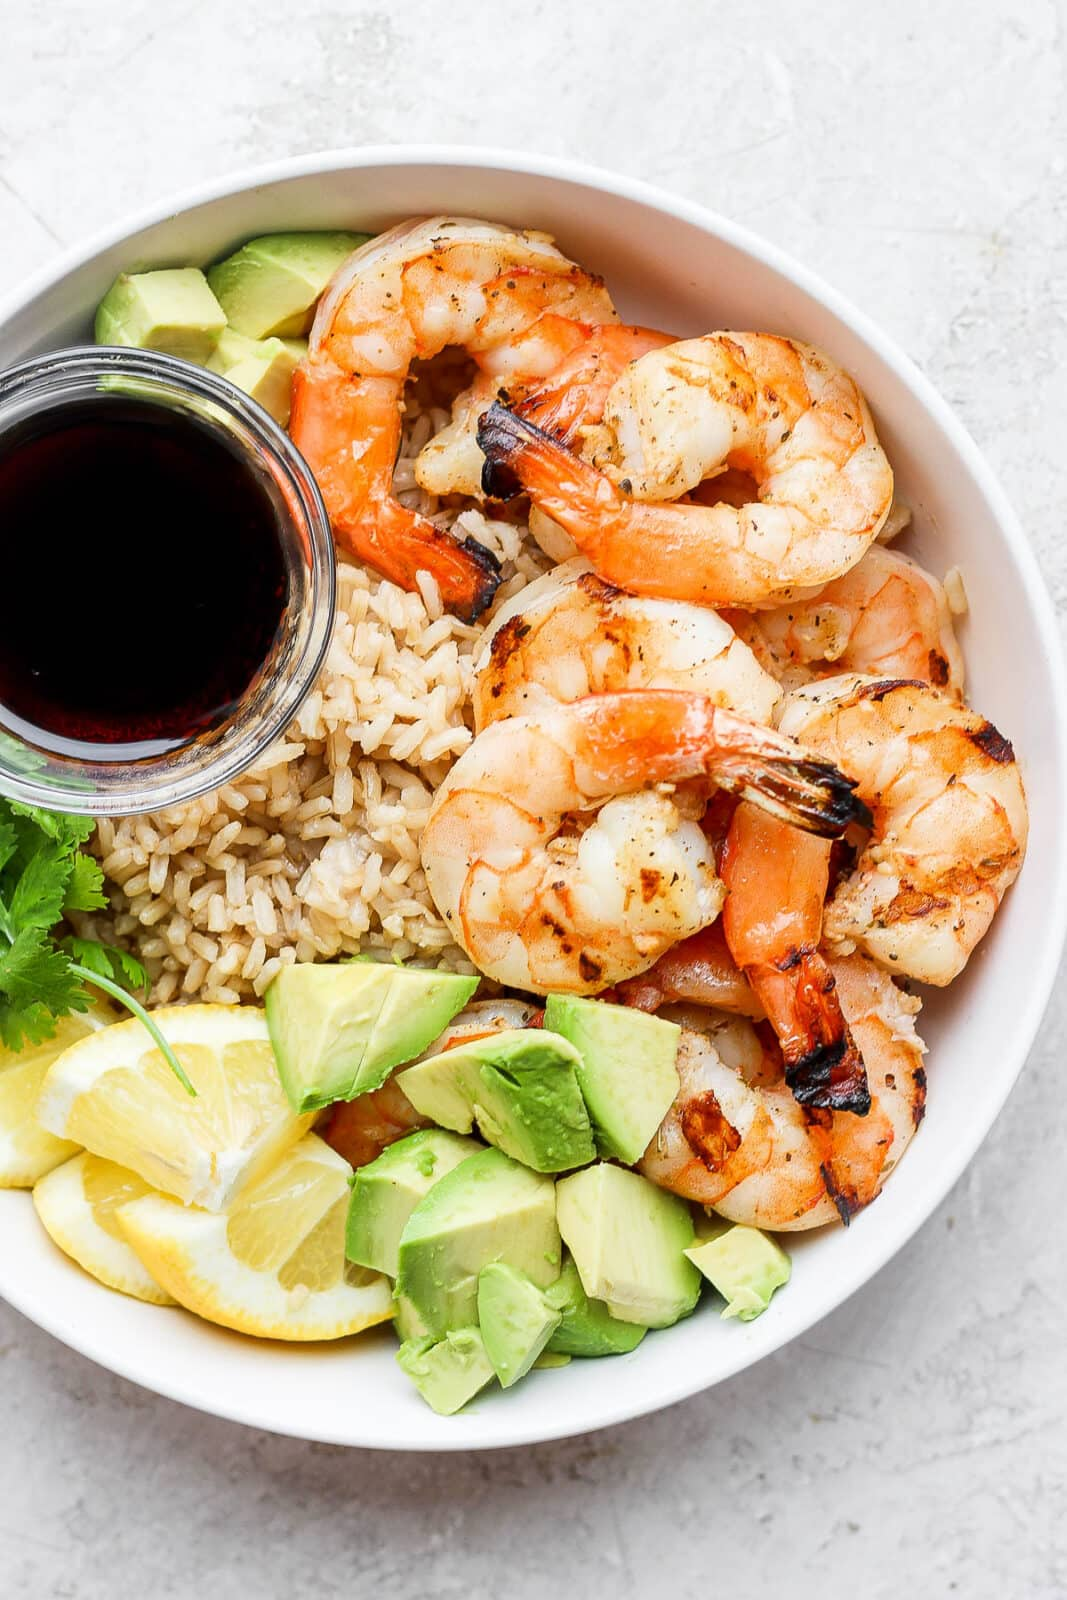 Shrimp rice bowl with a small dish of soy sauce.